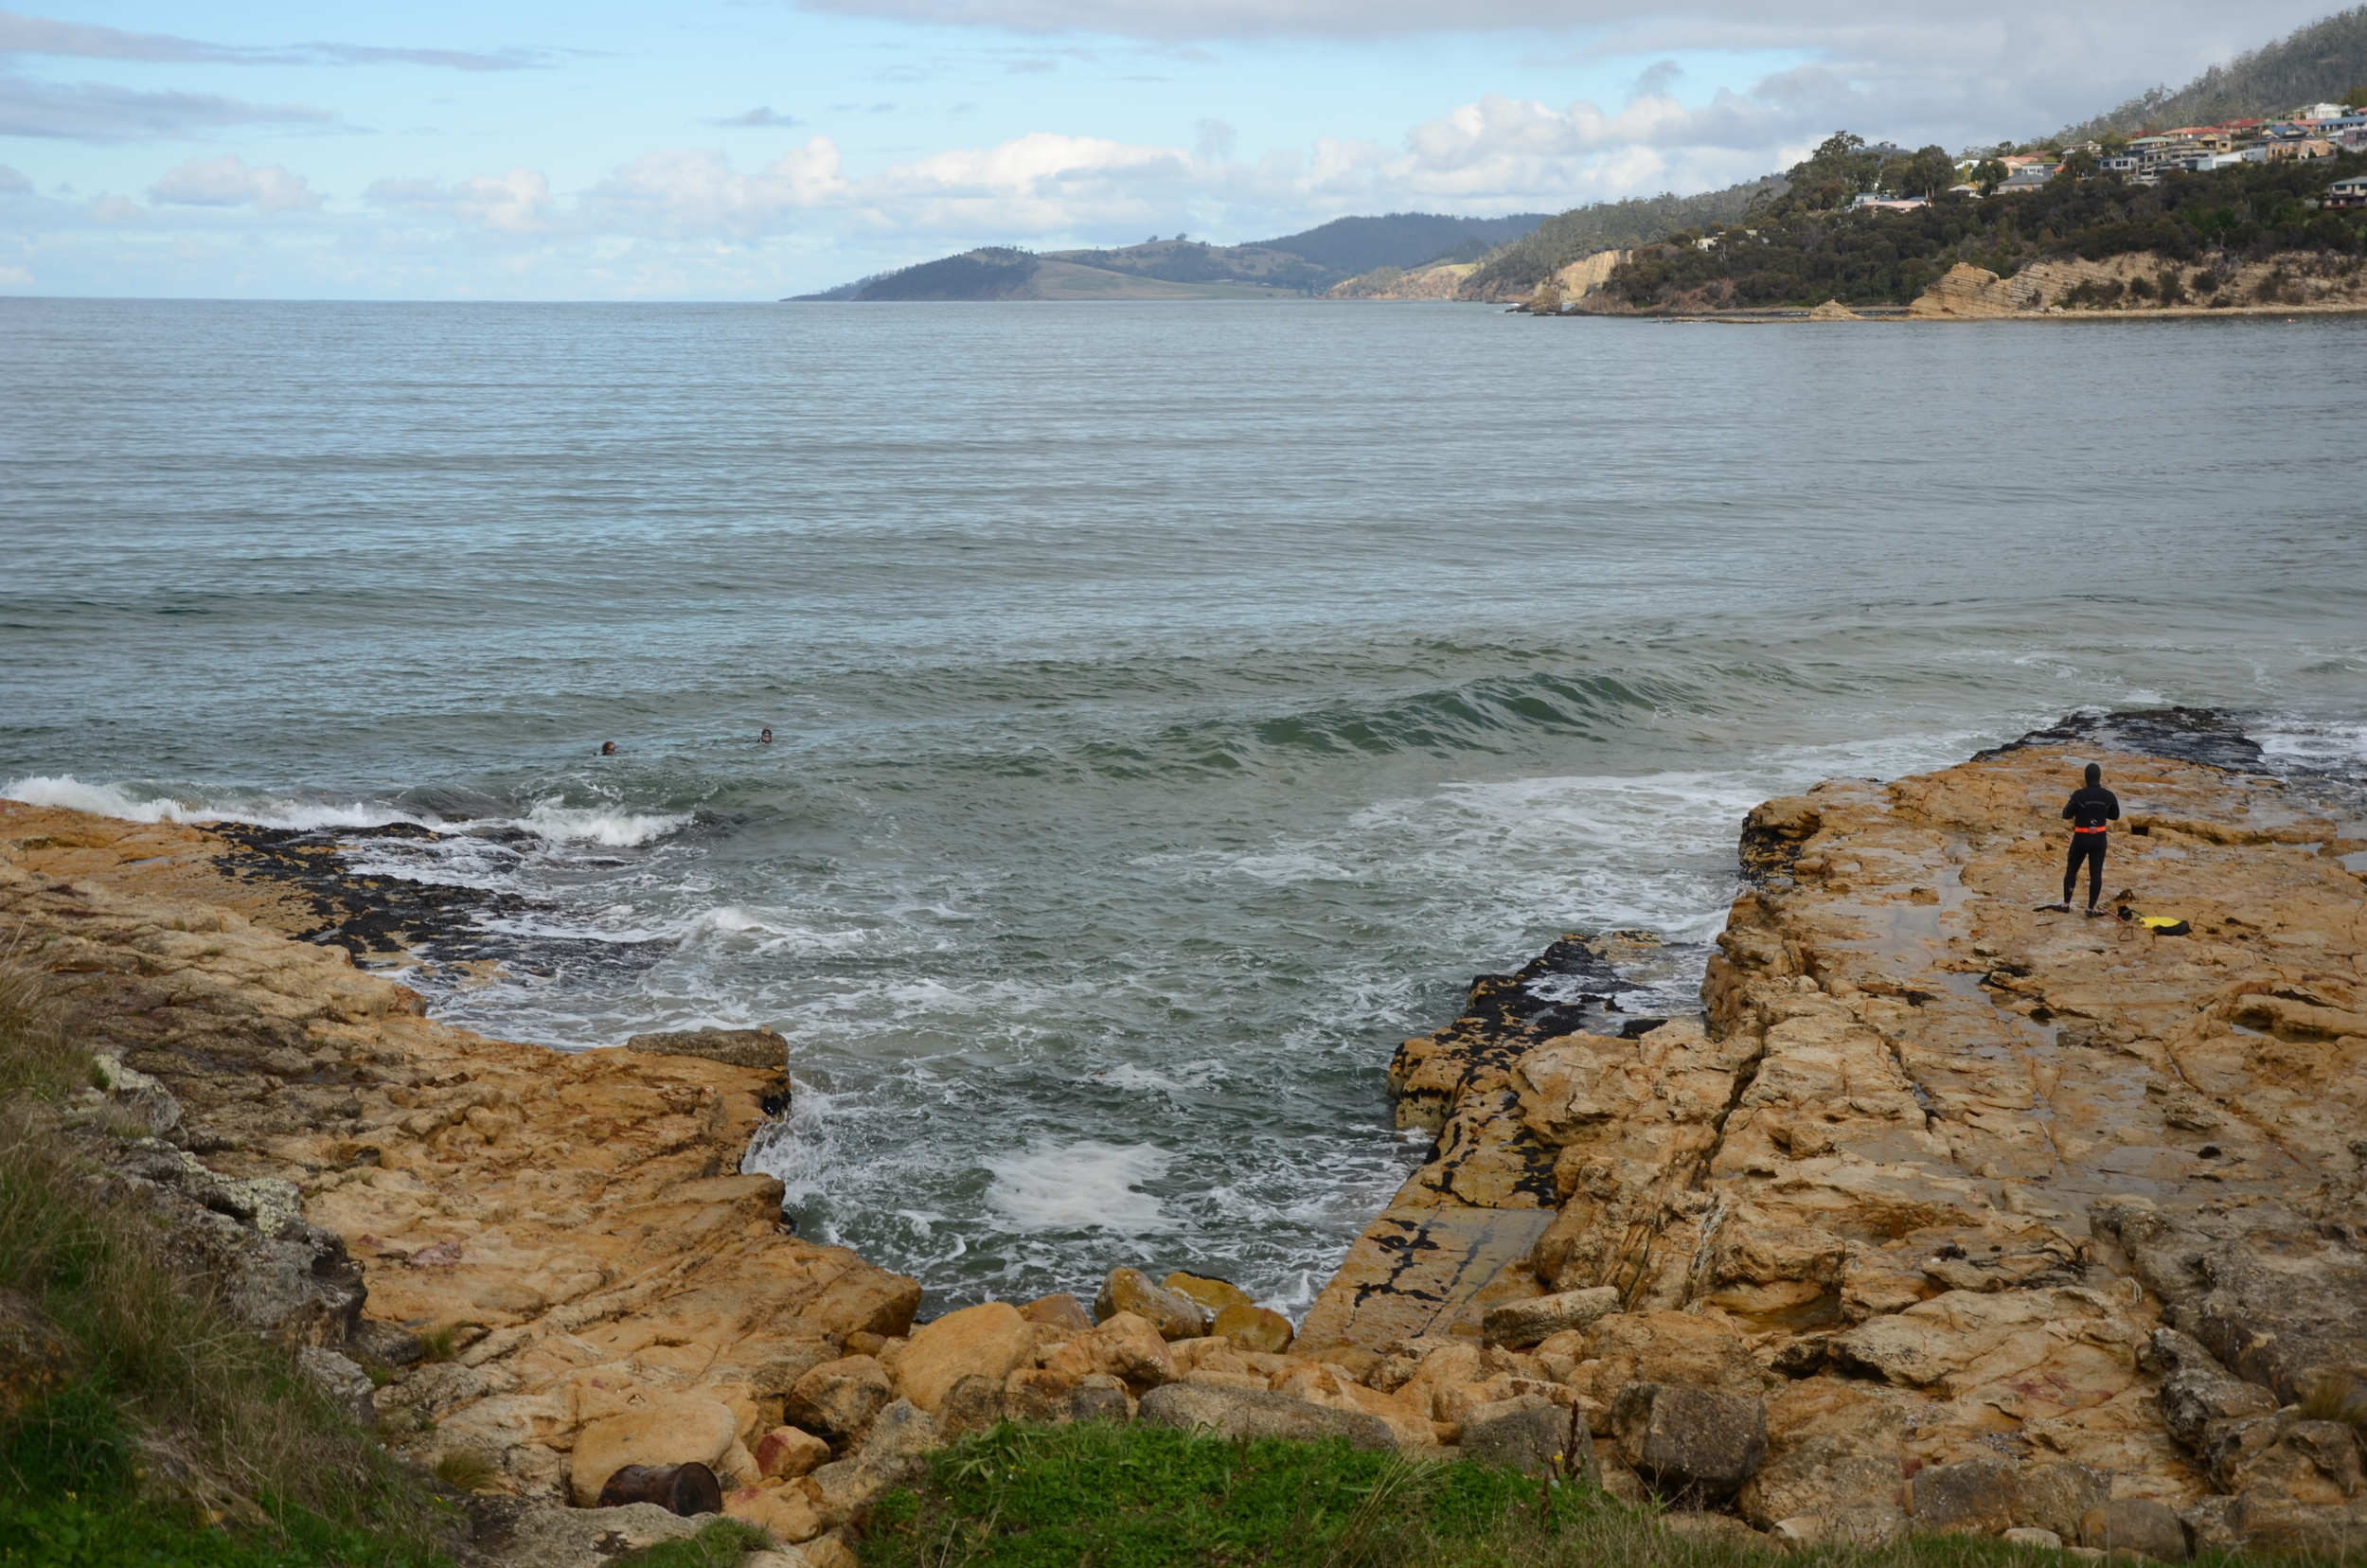 Lunch time entertainment at Blackmans Bay watching 3 guys getting tossed around in the surf spearing fishing!